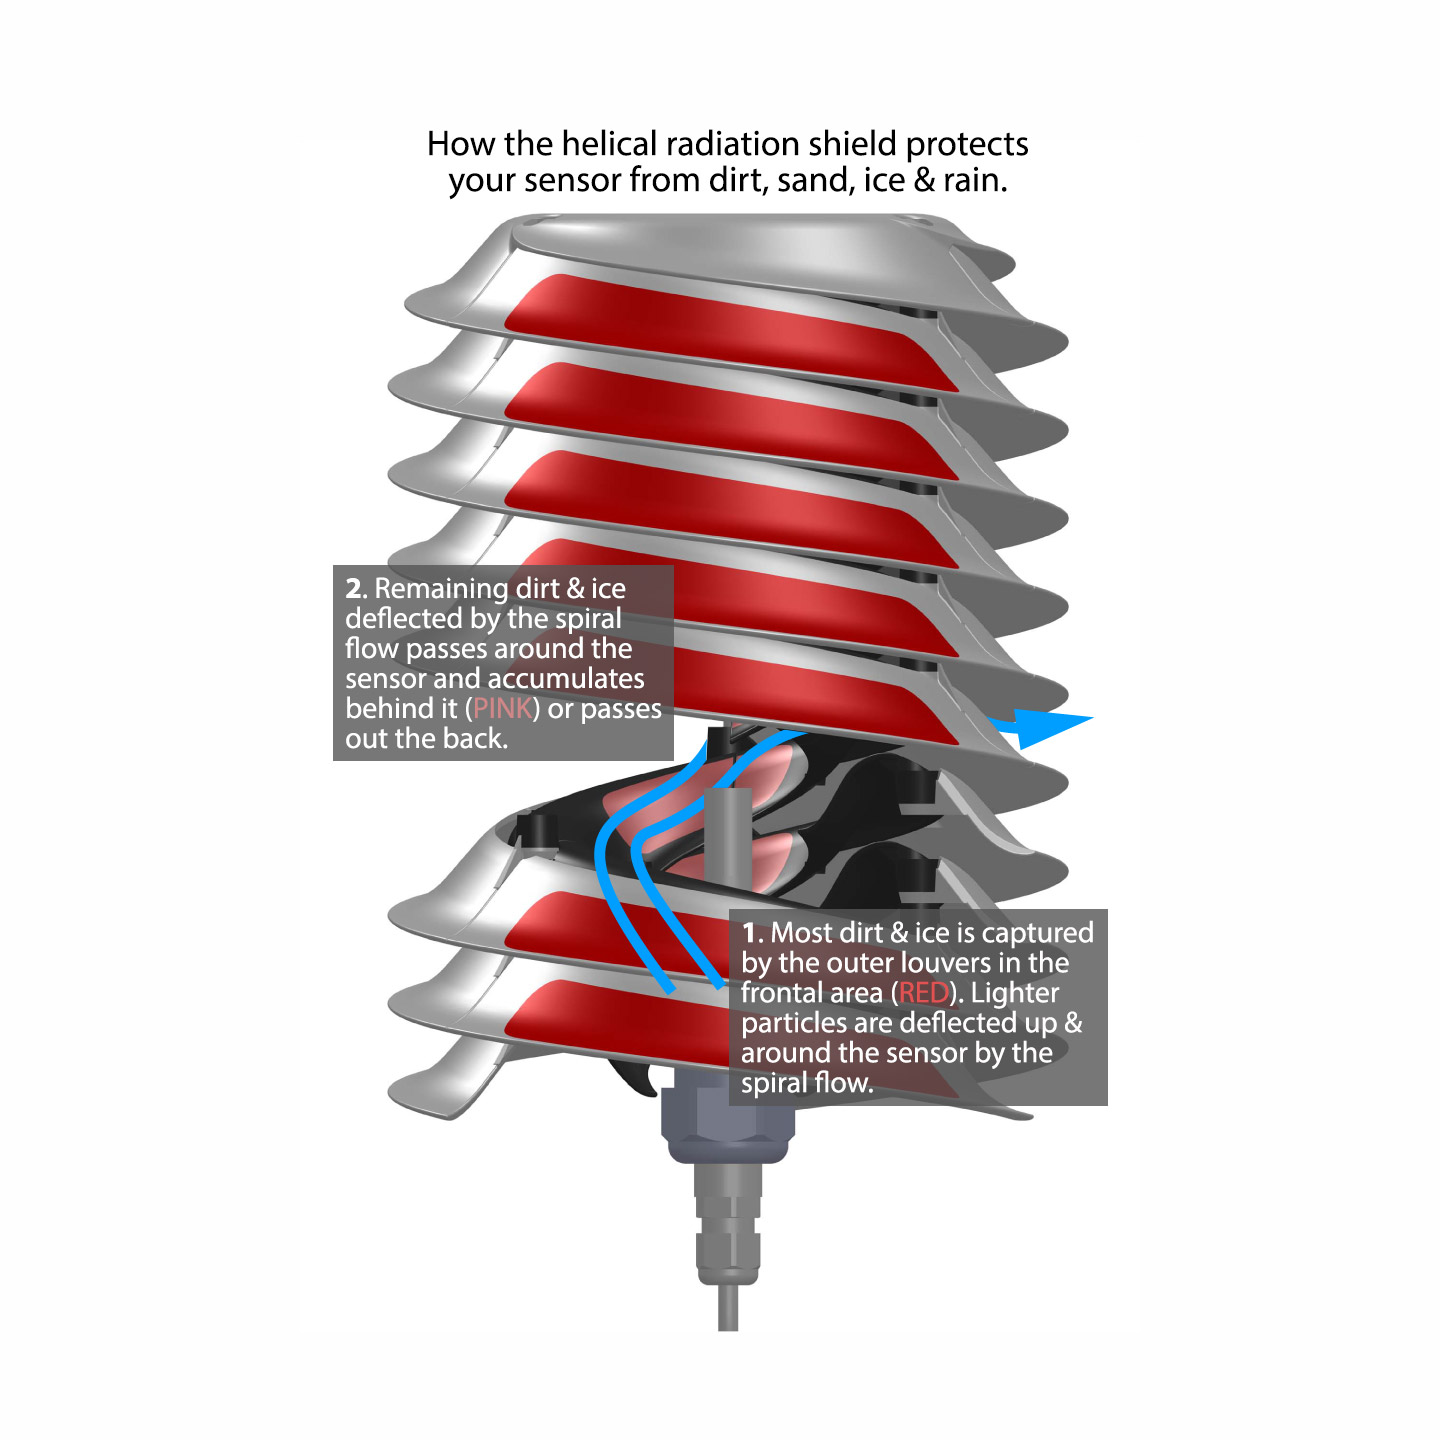 Illustration: How the helical radiation shield protects your sensor from dirt, sand, ice and rain.